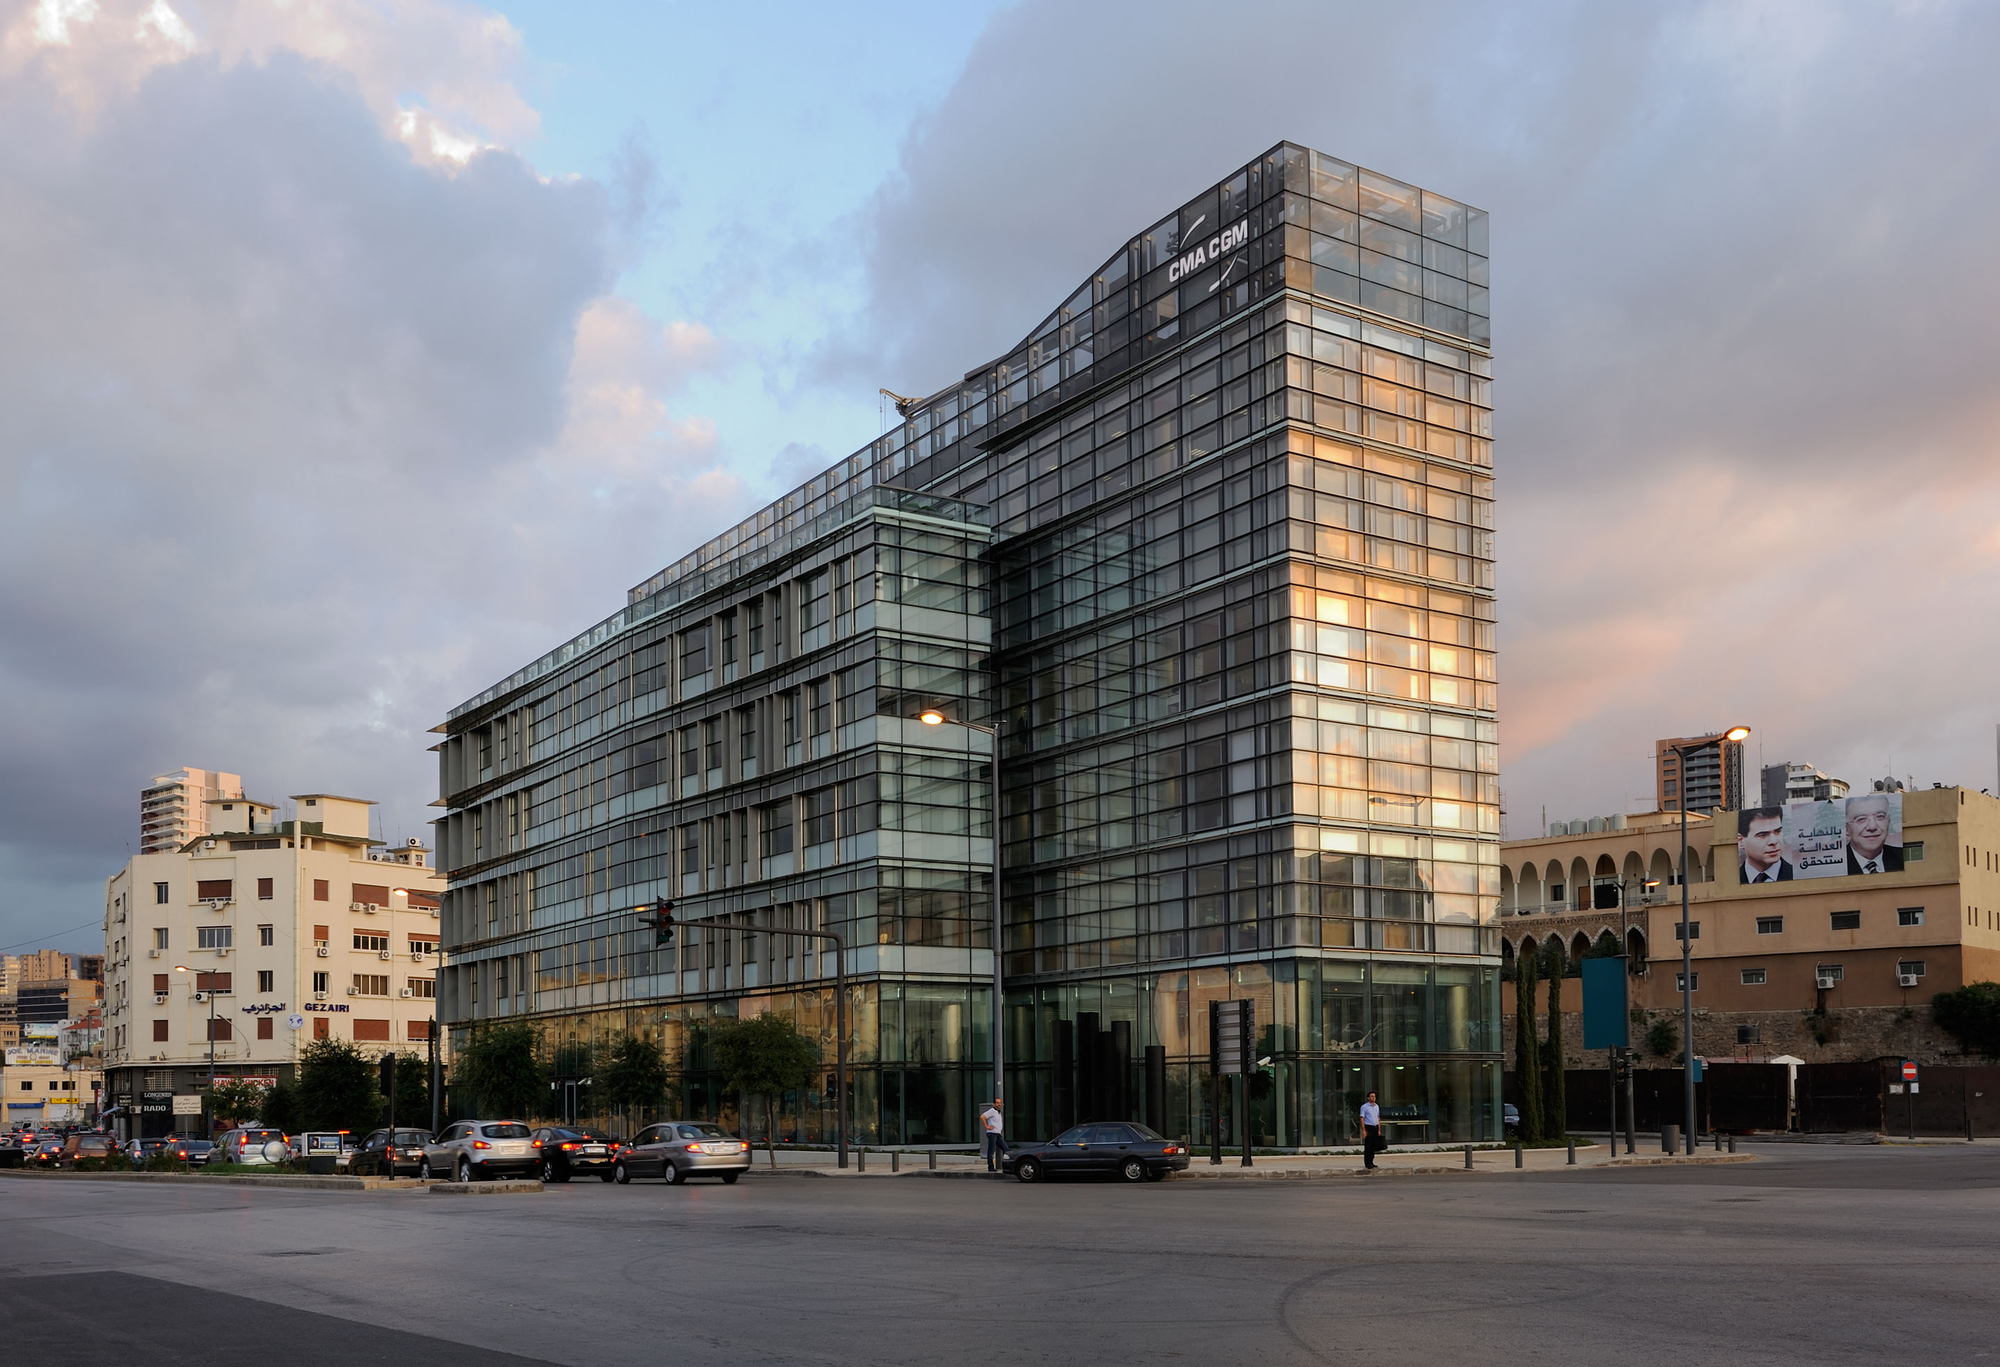 Cma cgm headquarters nabil gholam architects archdaily for Plataforma arquitectura